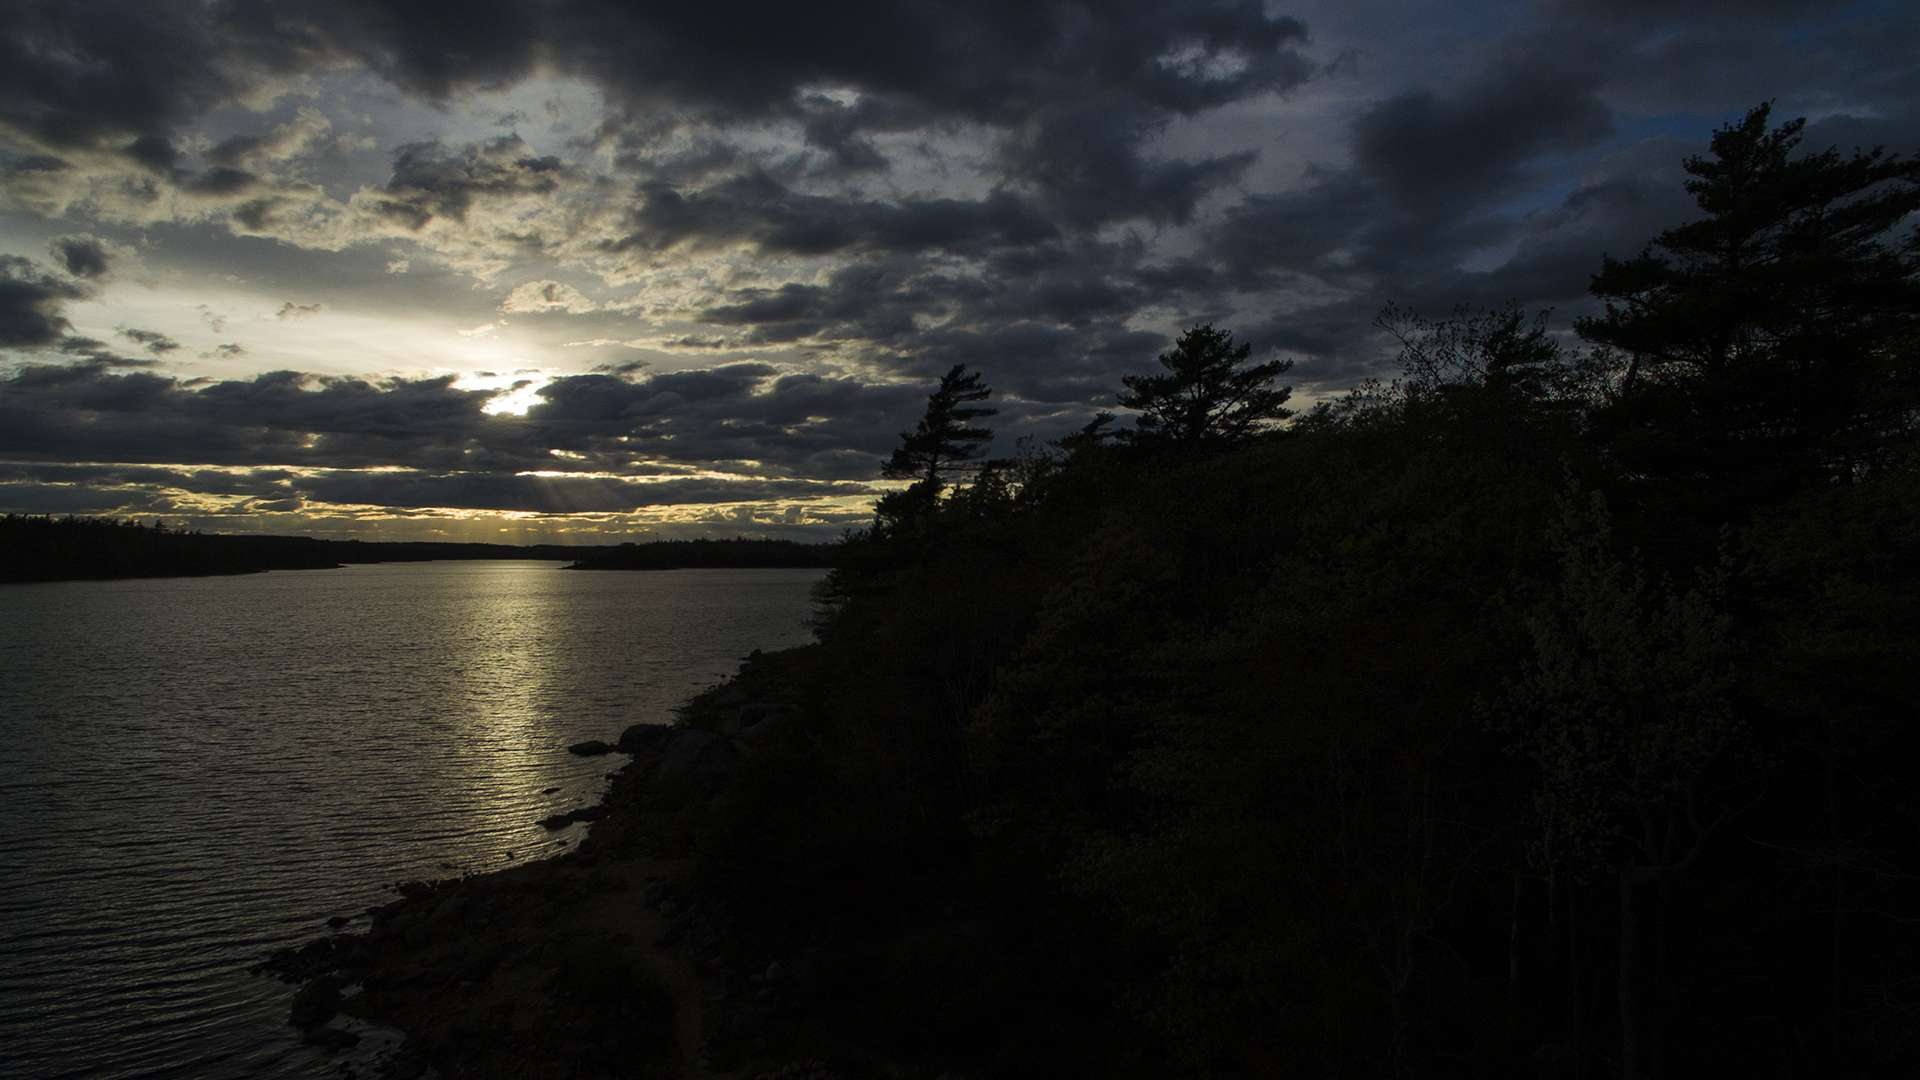 The sun sets among the clouds on June 1, 2020 at Long Lake Provincial Park in Spryfield, Nova Scotia.